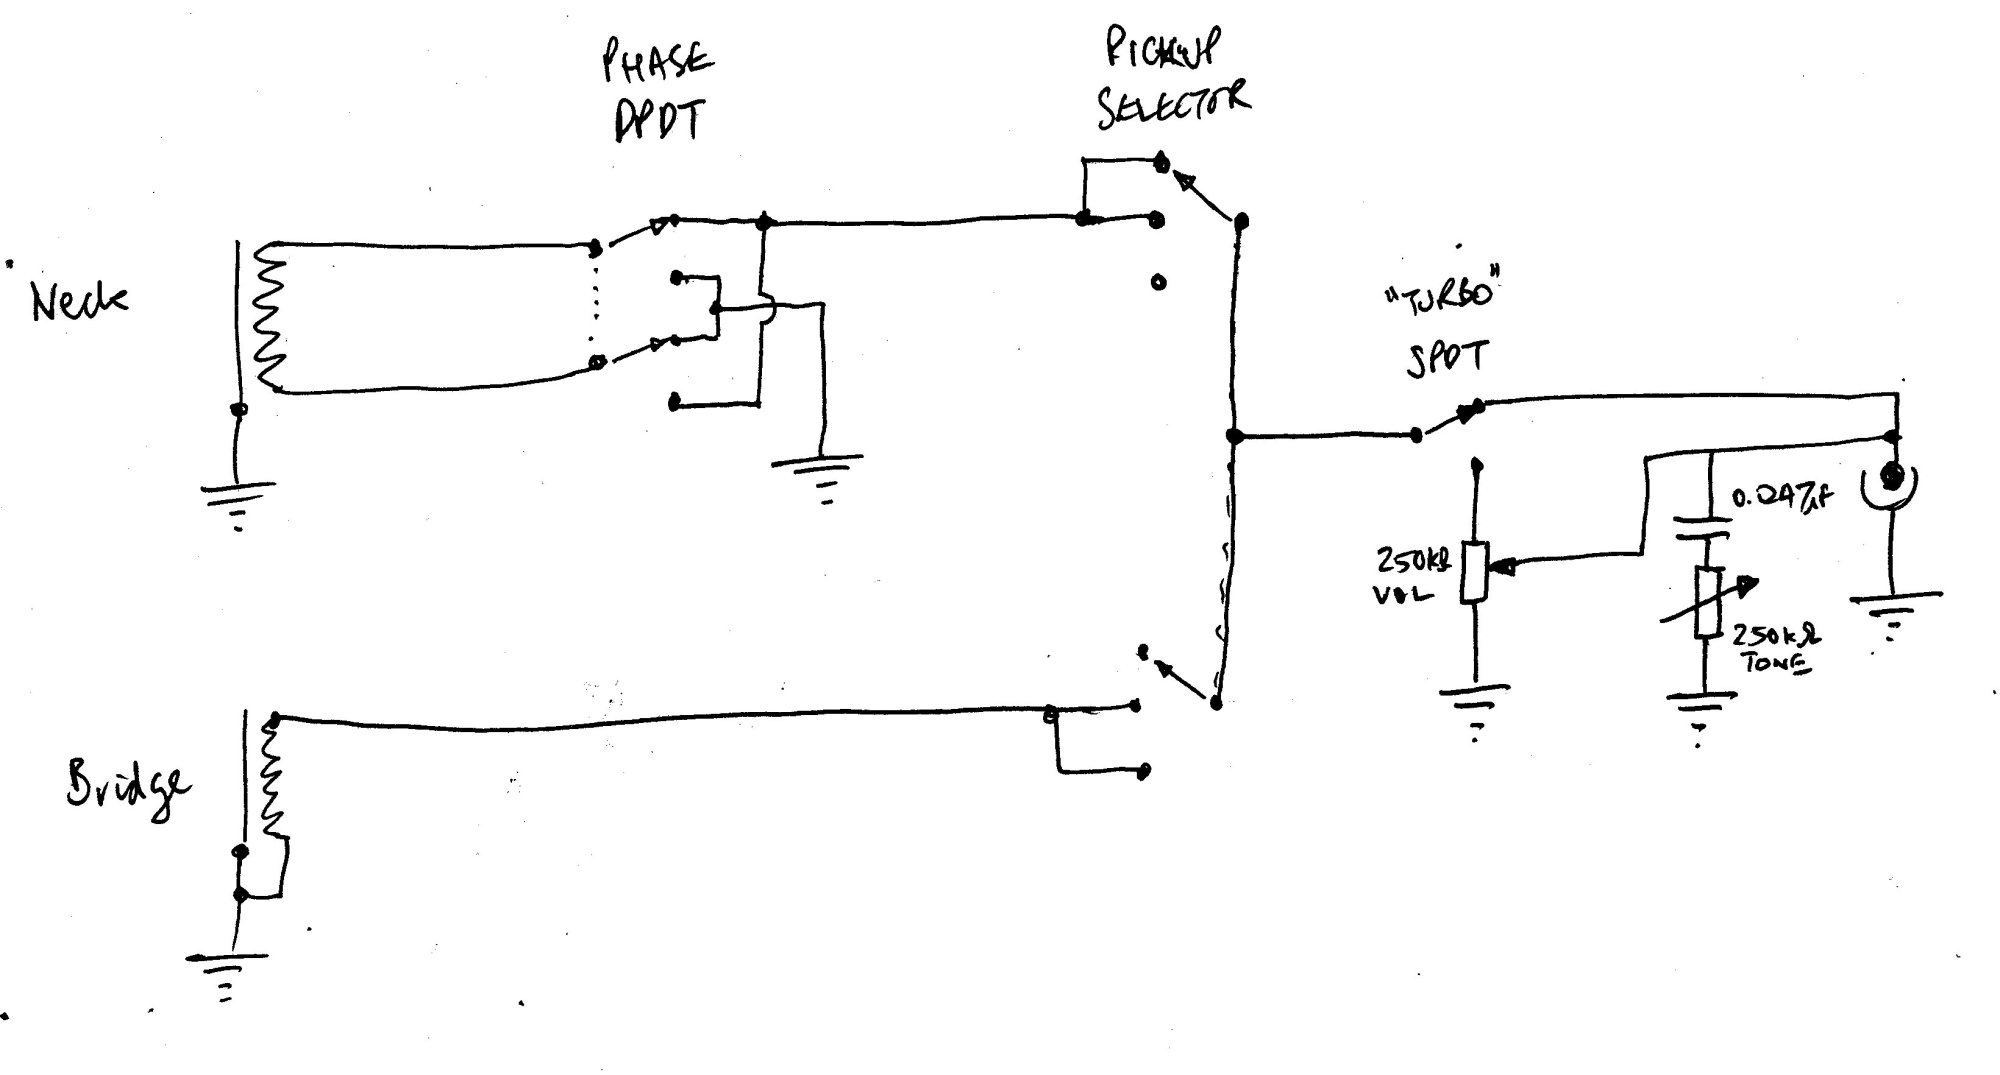 hight resolution of blank tele wiring diagram mod simple wiring schema telecaster switch wiring blank tele wiring diagram mod